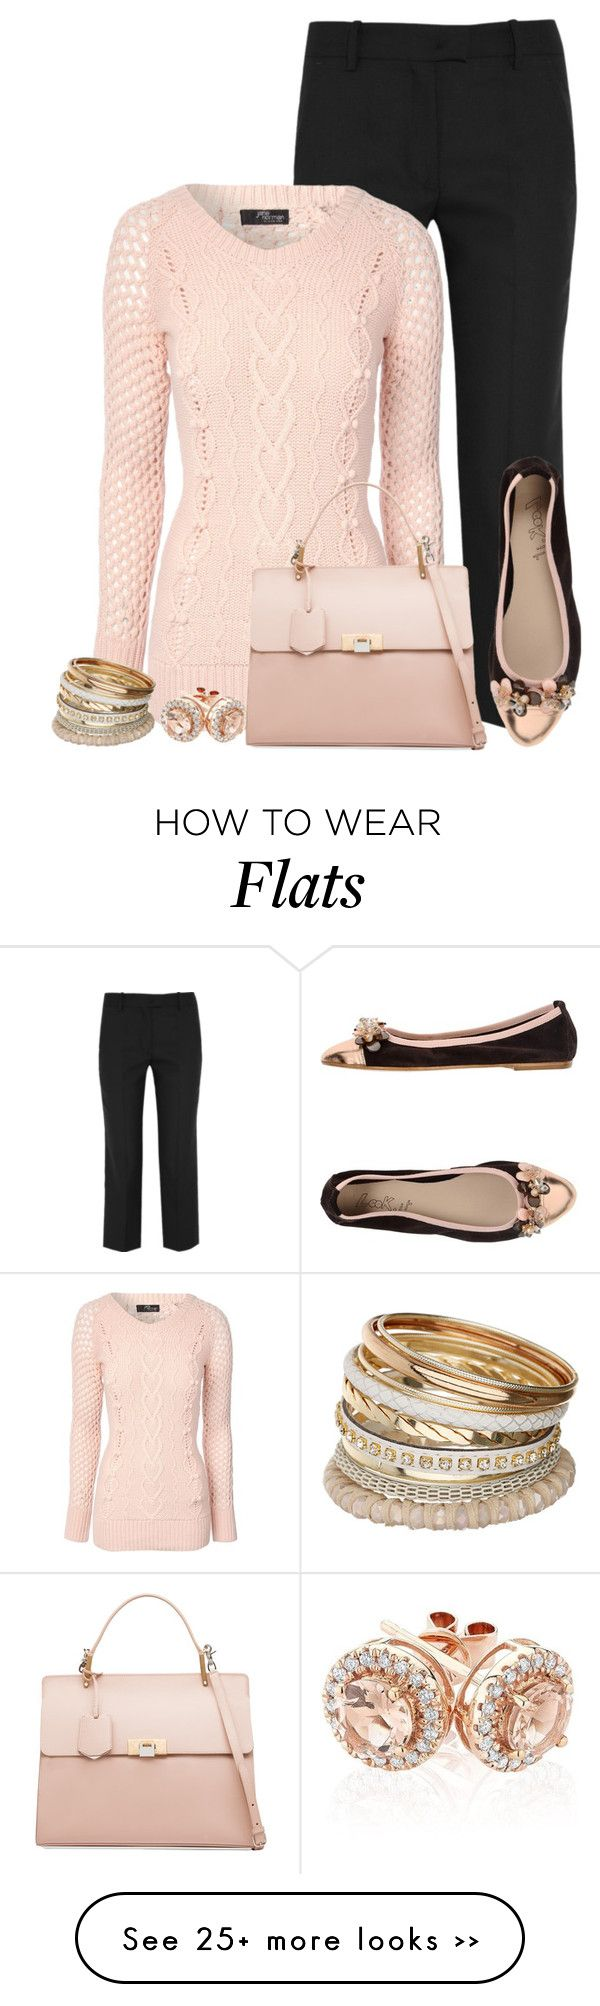 """Beaded Flats"" by terry-tlc on Polyvore"